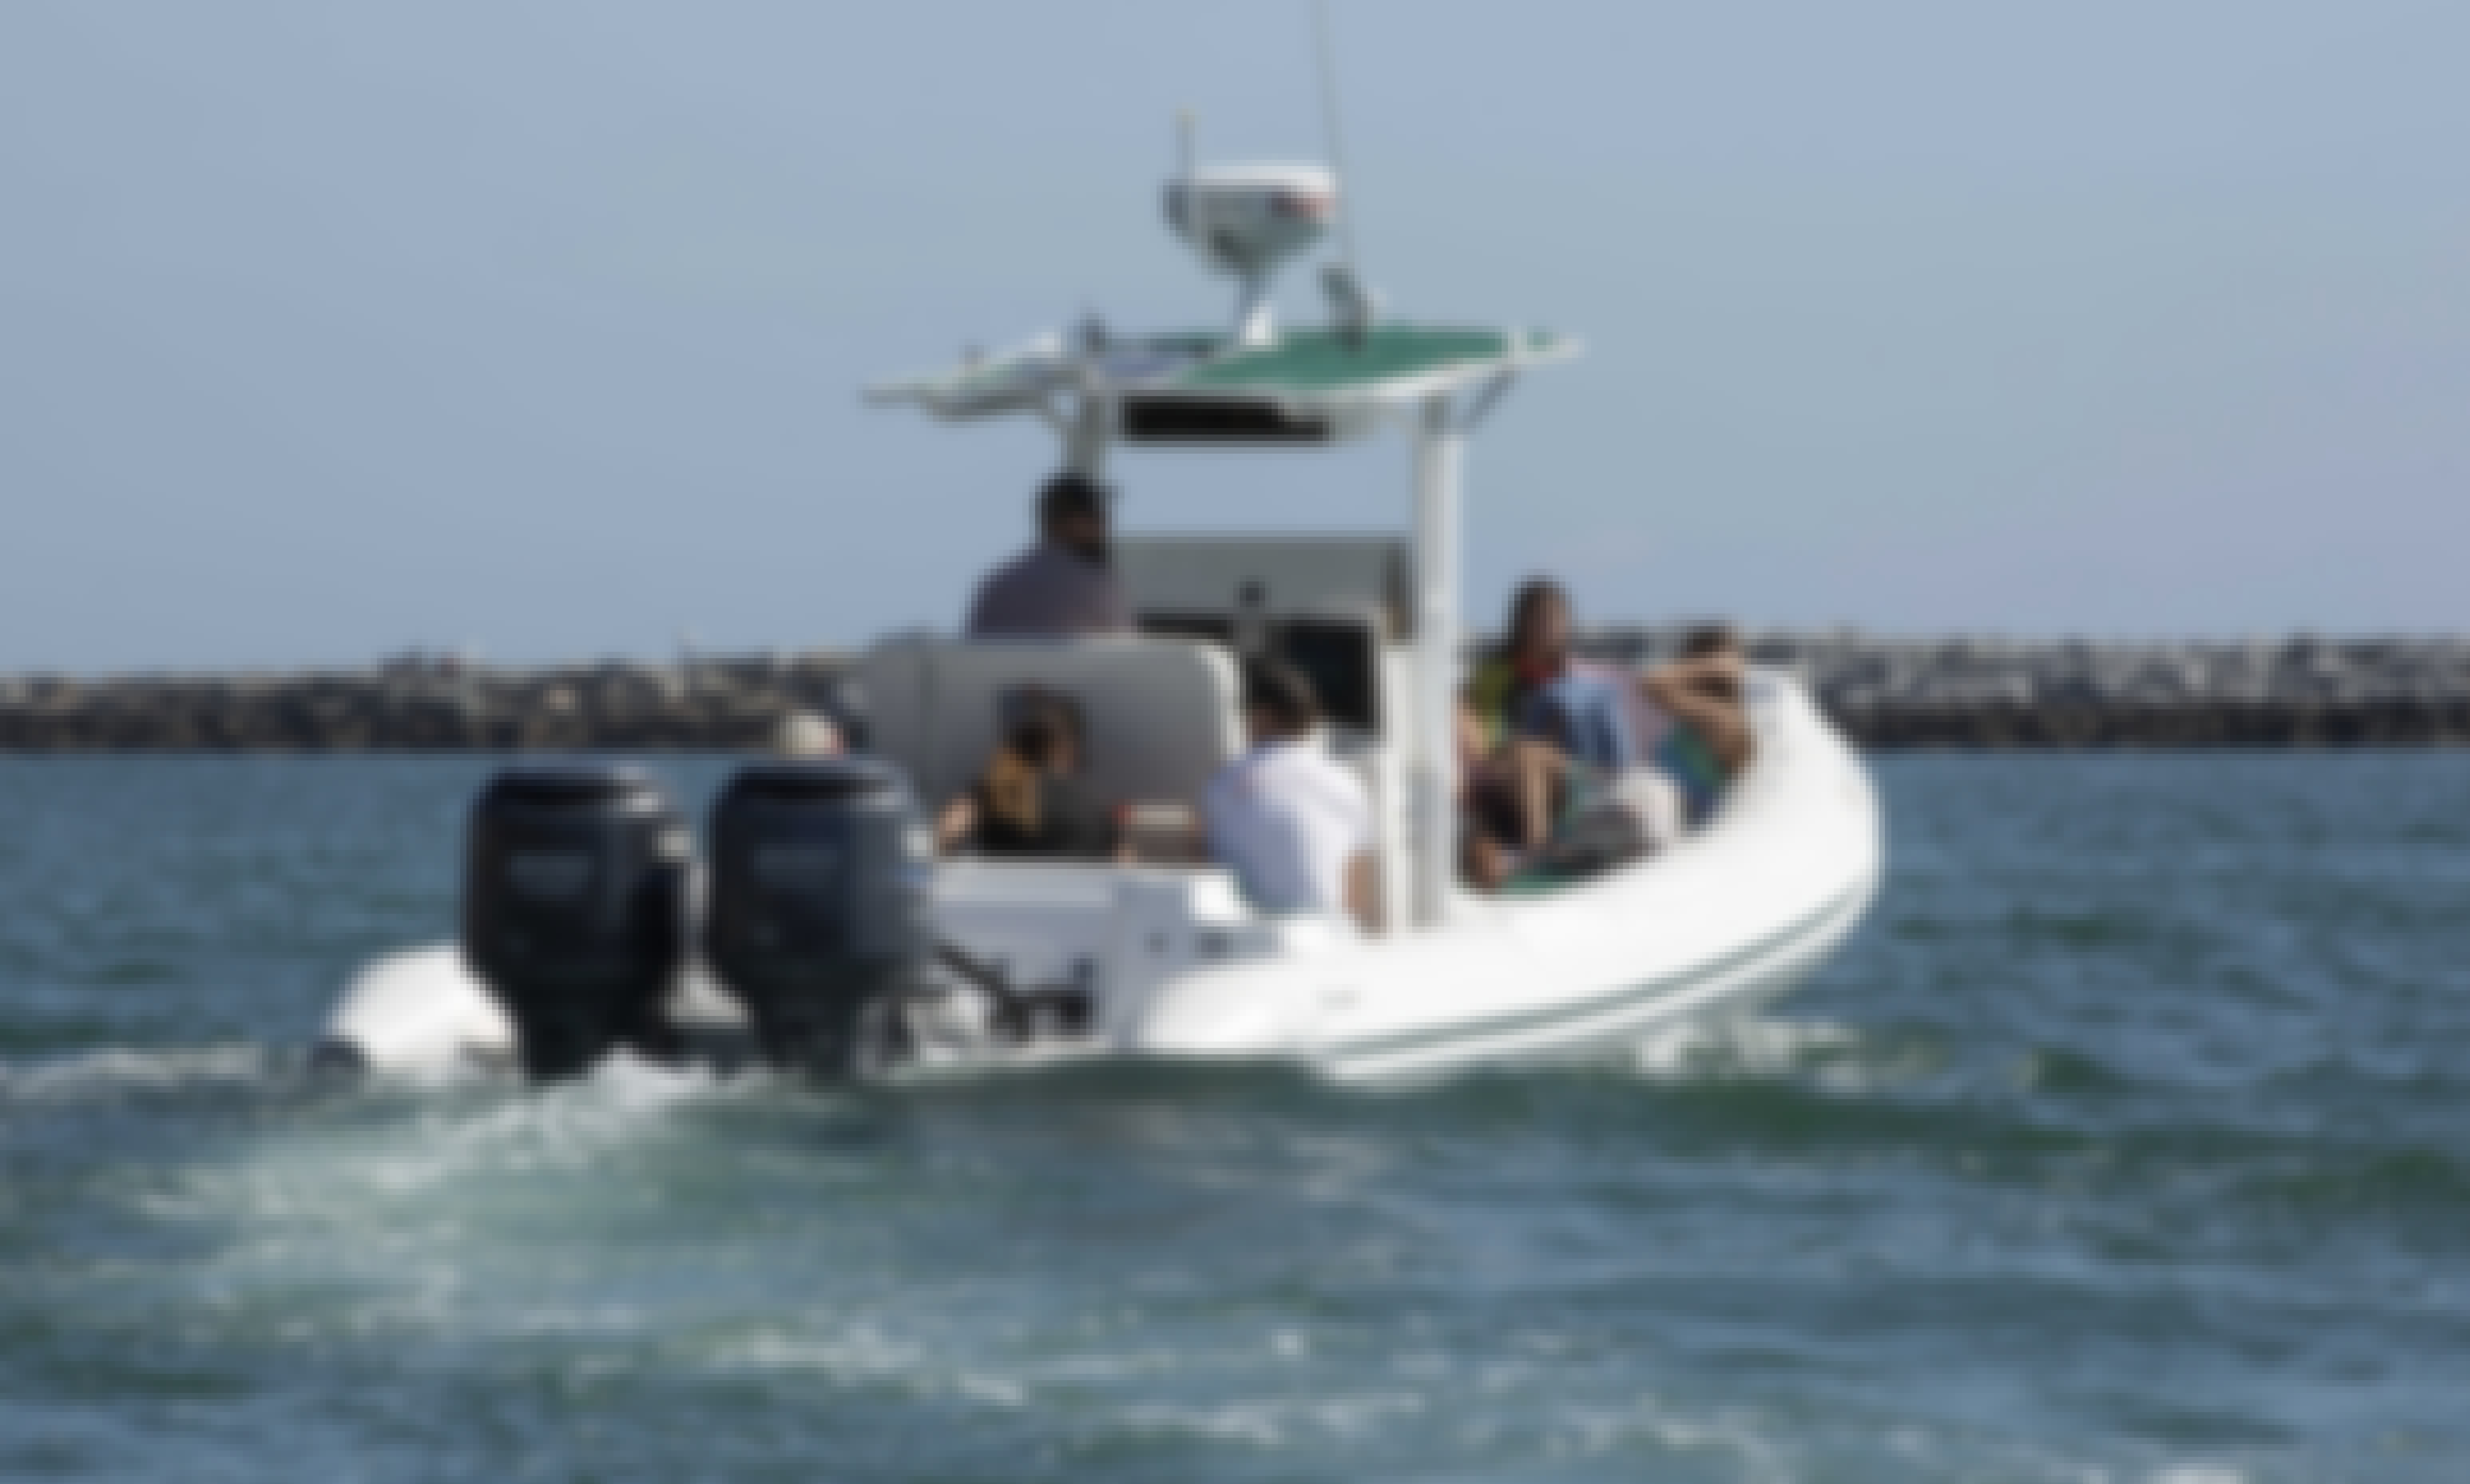 Luxury Boat for Coastal/Harbor/Emerald Bay cruises or Offshore Dolphin Whale watching